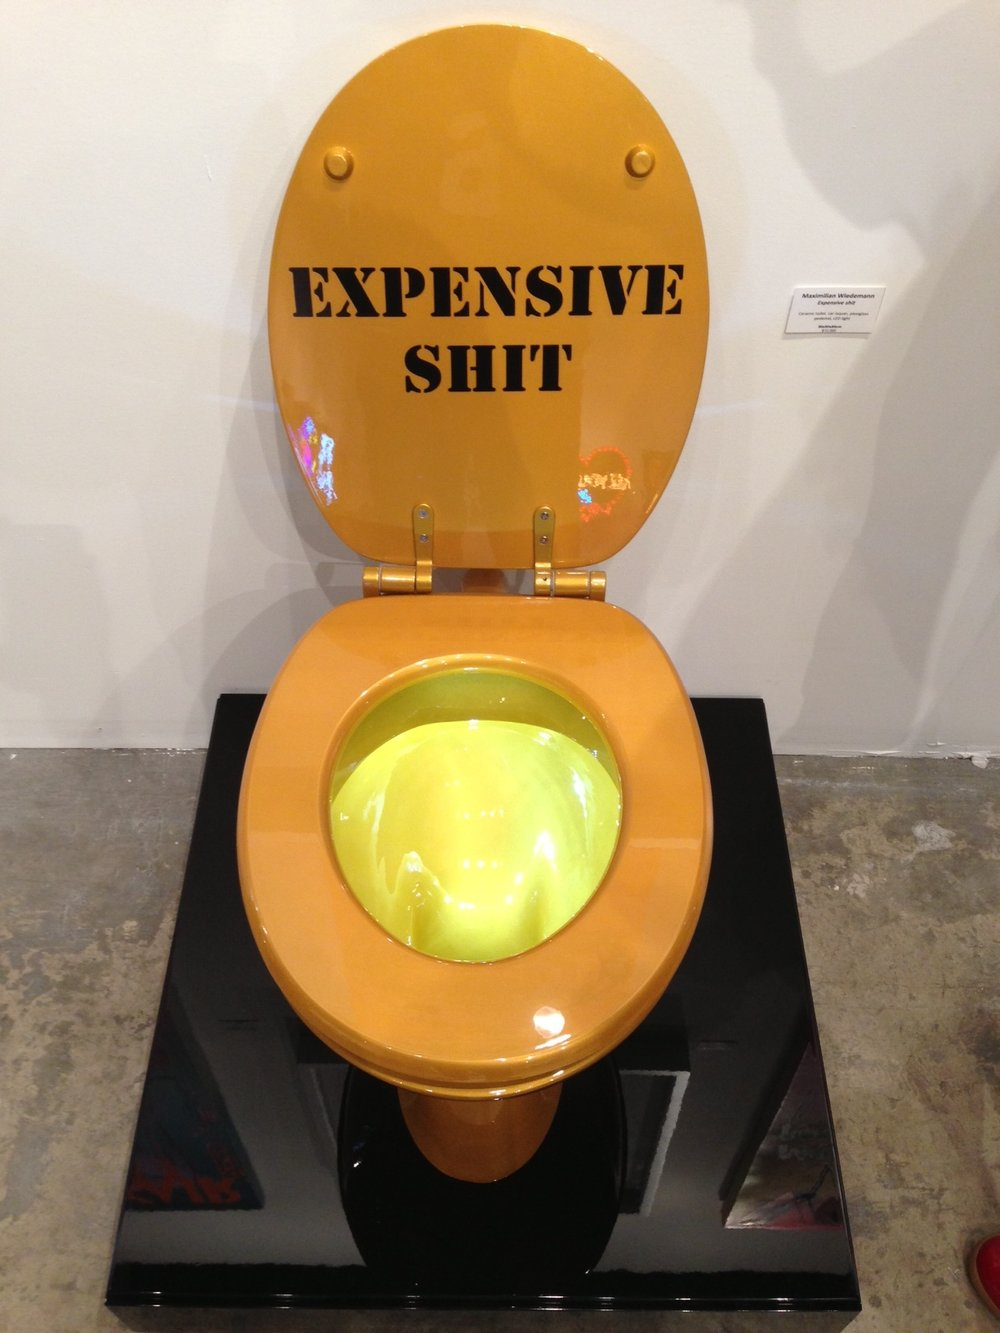 Expensive shit-1.JPG